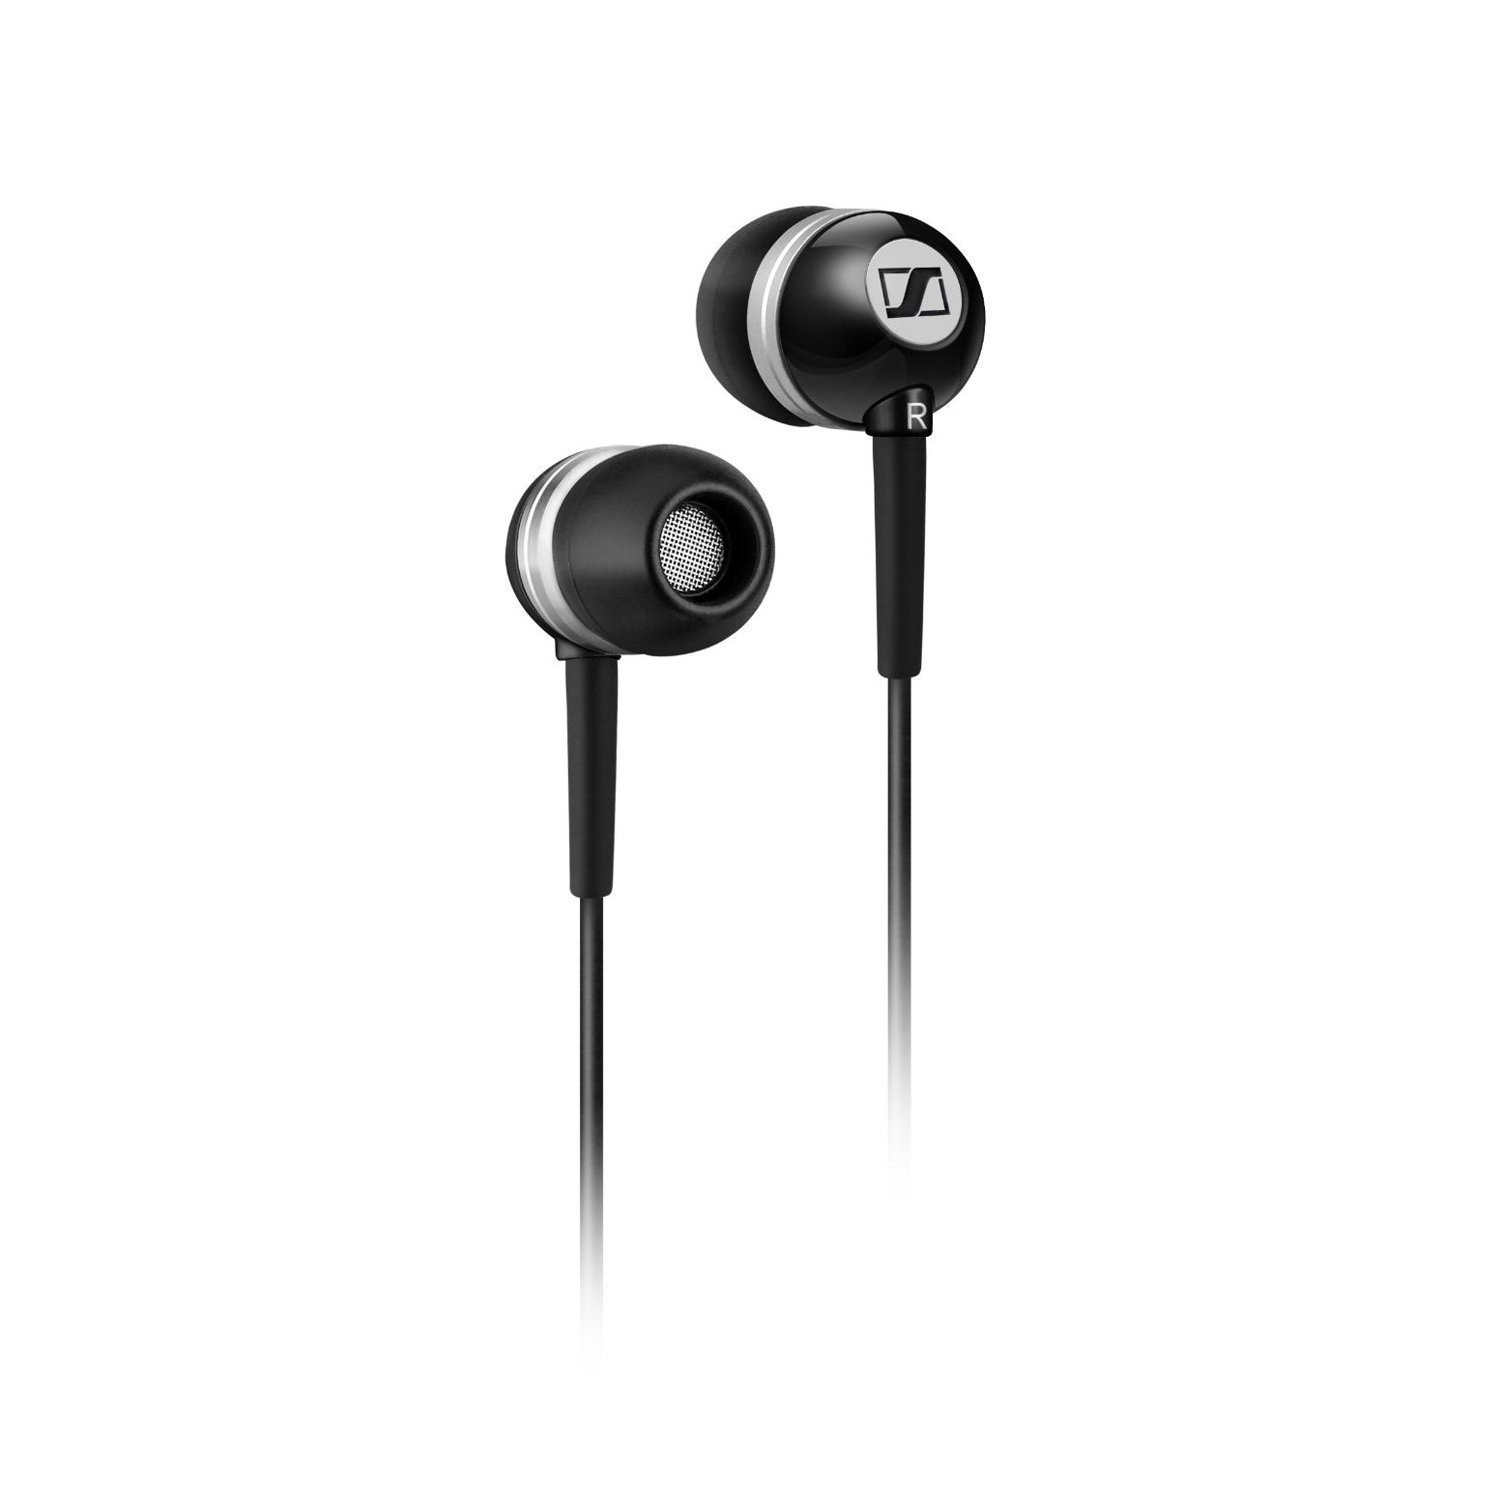 Sennheiser CX300 II CX 300 II Precision Enhanced Bass Earbuds, Black